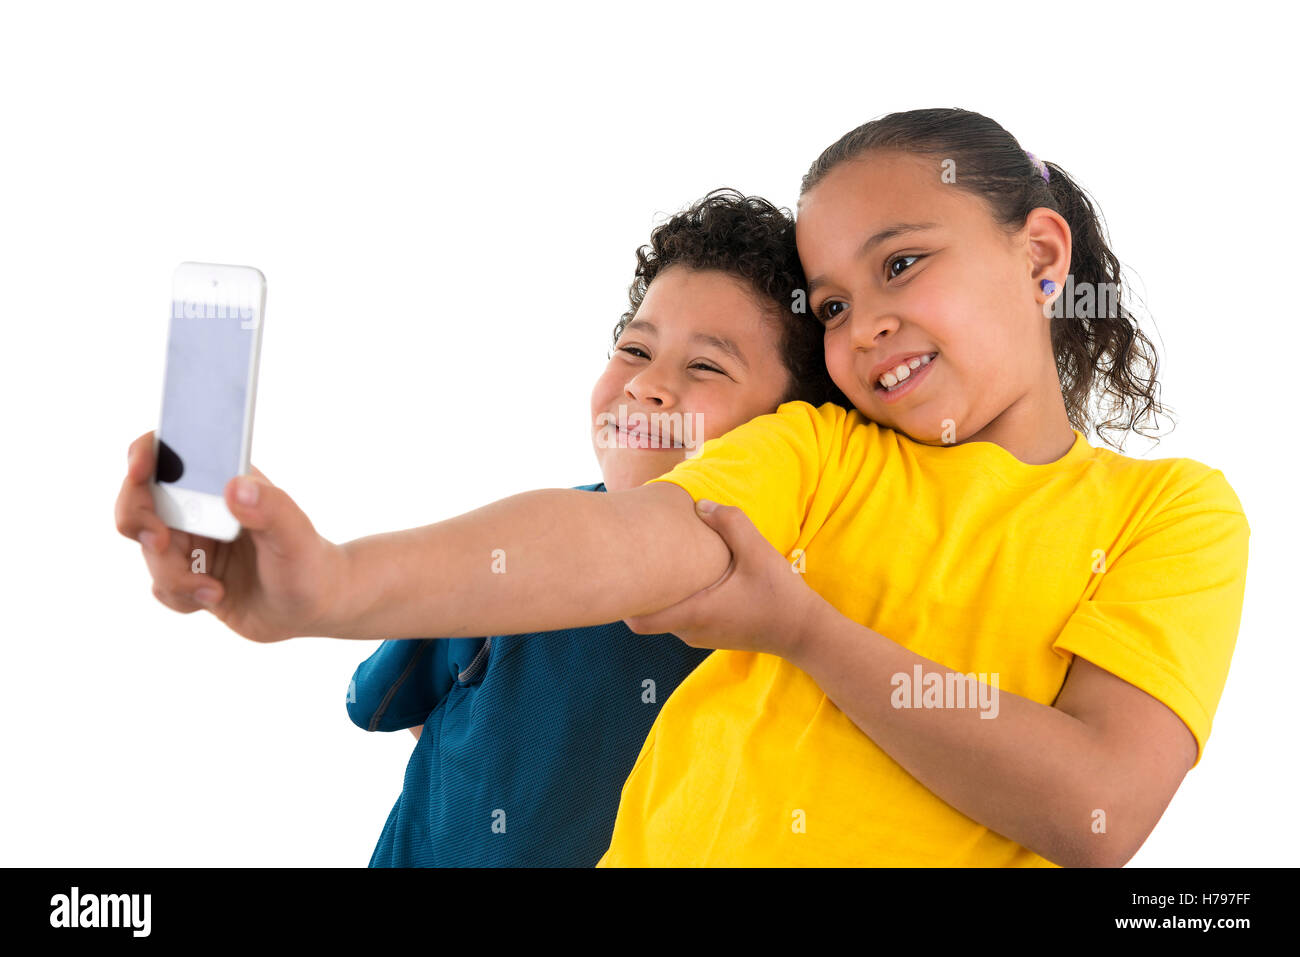 Young Boy and Girl Taking a Selfie Isolated on White Background - Stock Image